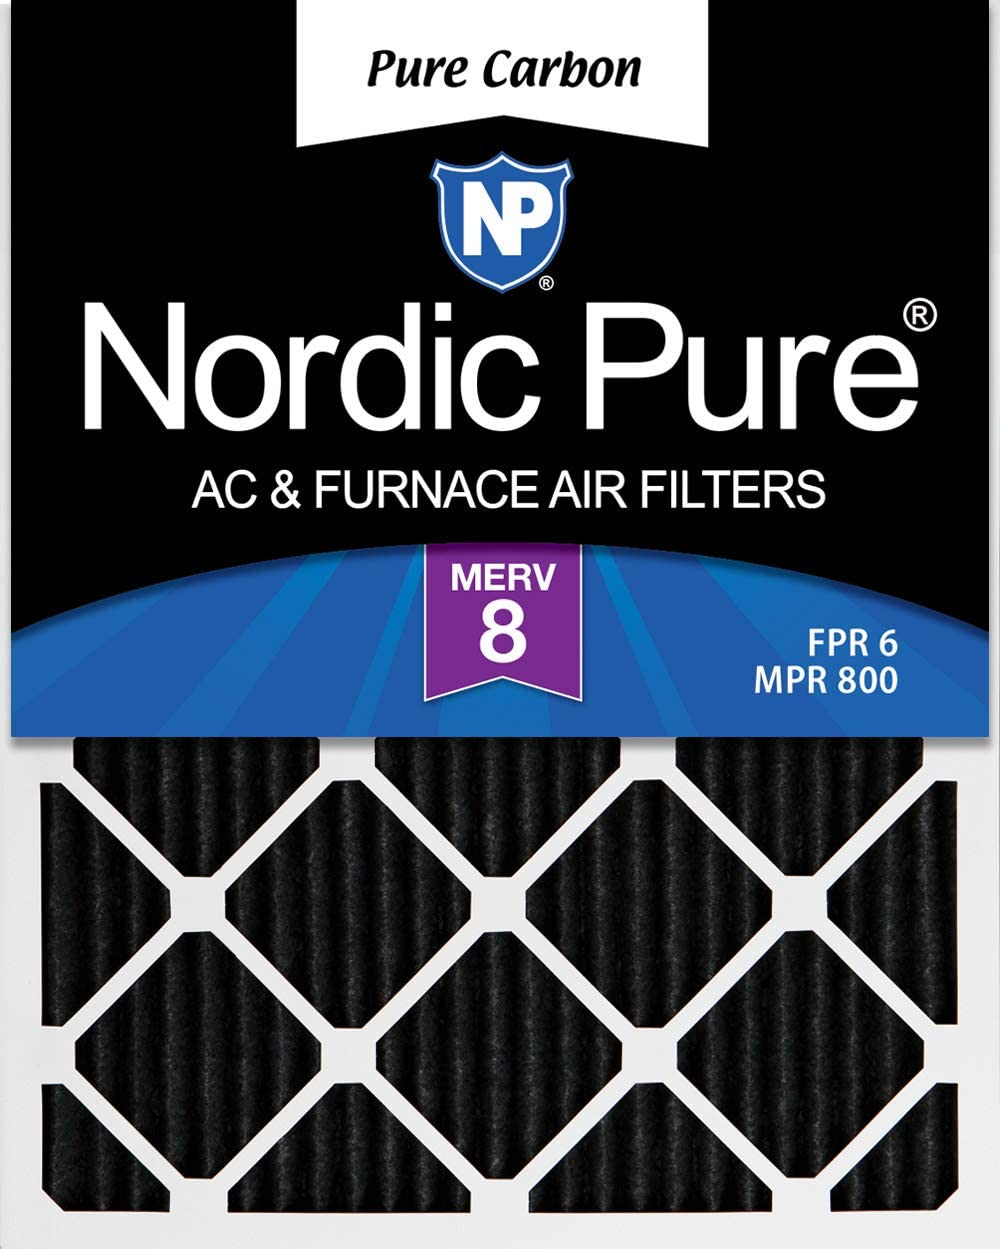 Nordic Pure 24x36x1 Exact MERV 12 Pleated AC Furnace Air Filters 3 Pack